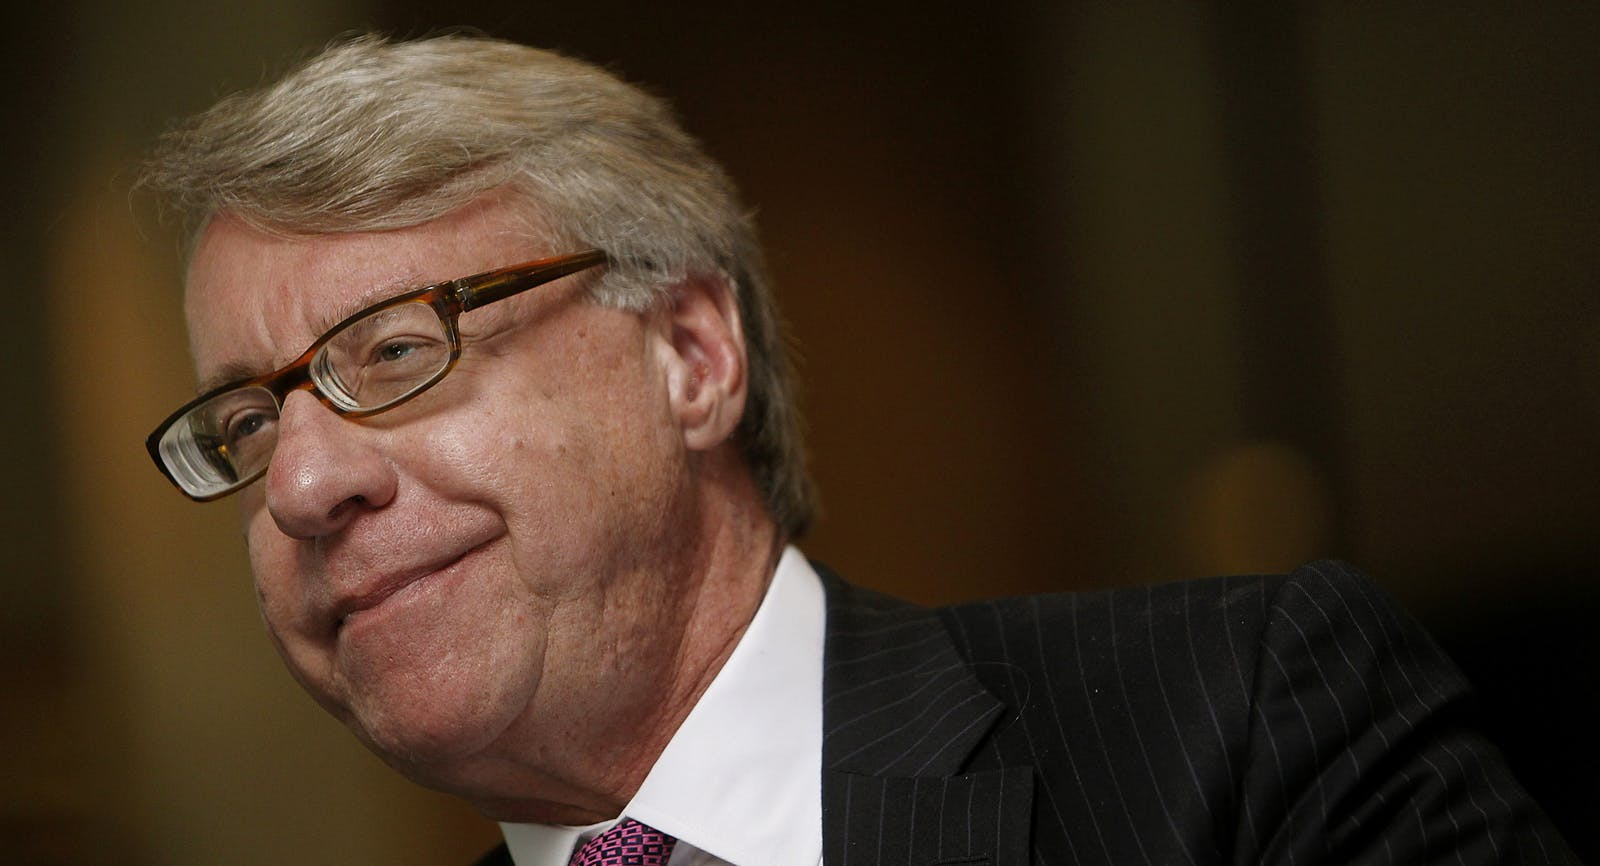 Short-selling specialist Jim Chanos. Photo by Bloomberg.